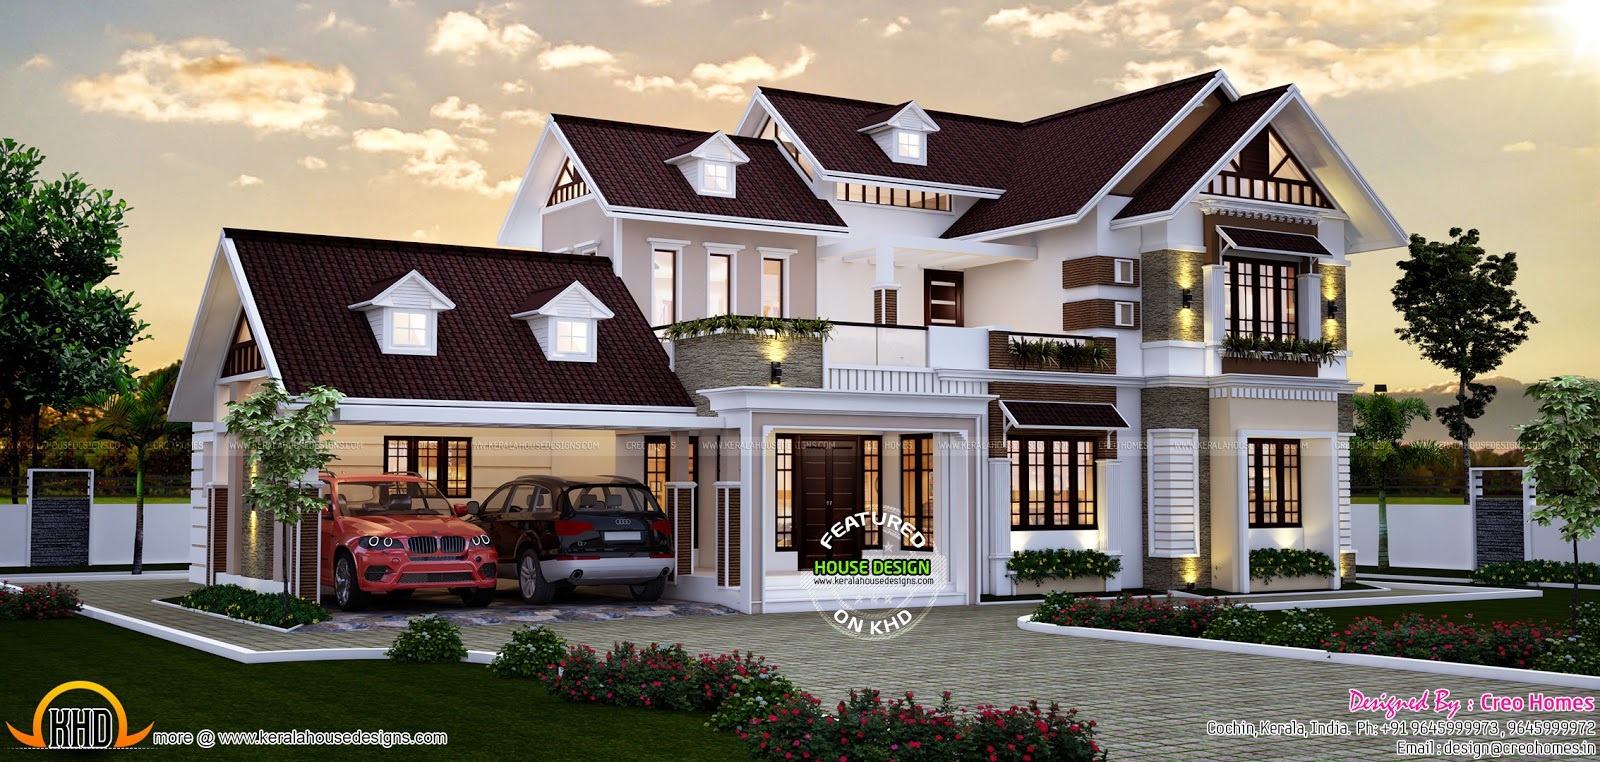 Elegant house designs home design and style for House plans by design